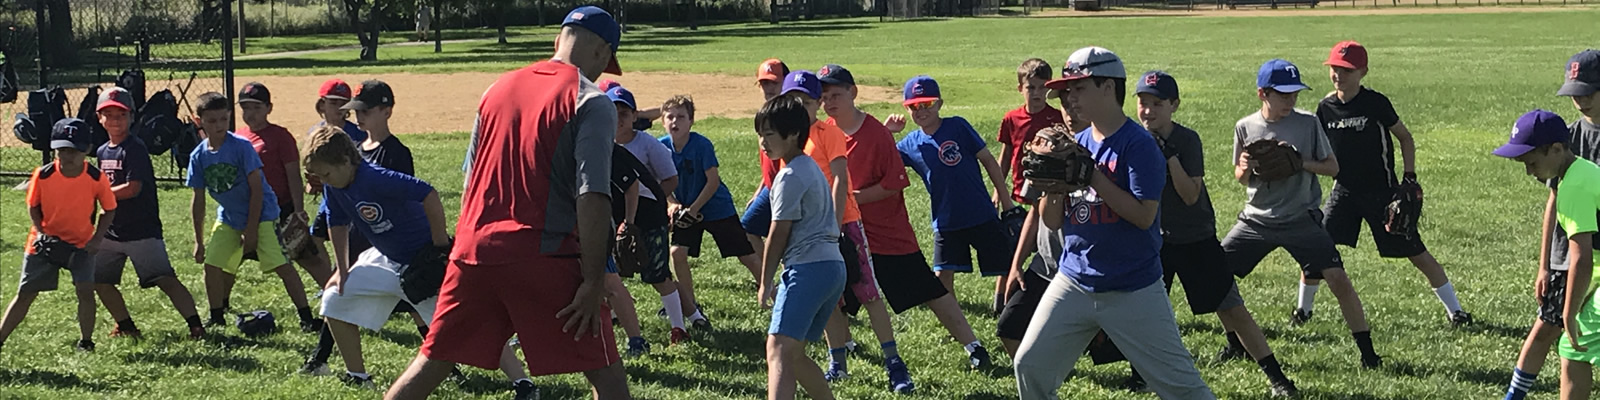 7-12 Year Old Camps « Chicago Youth Baseball Training